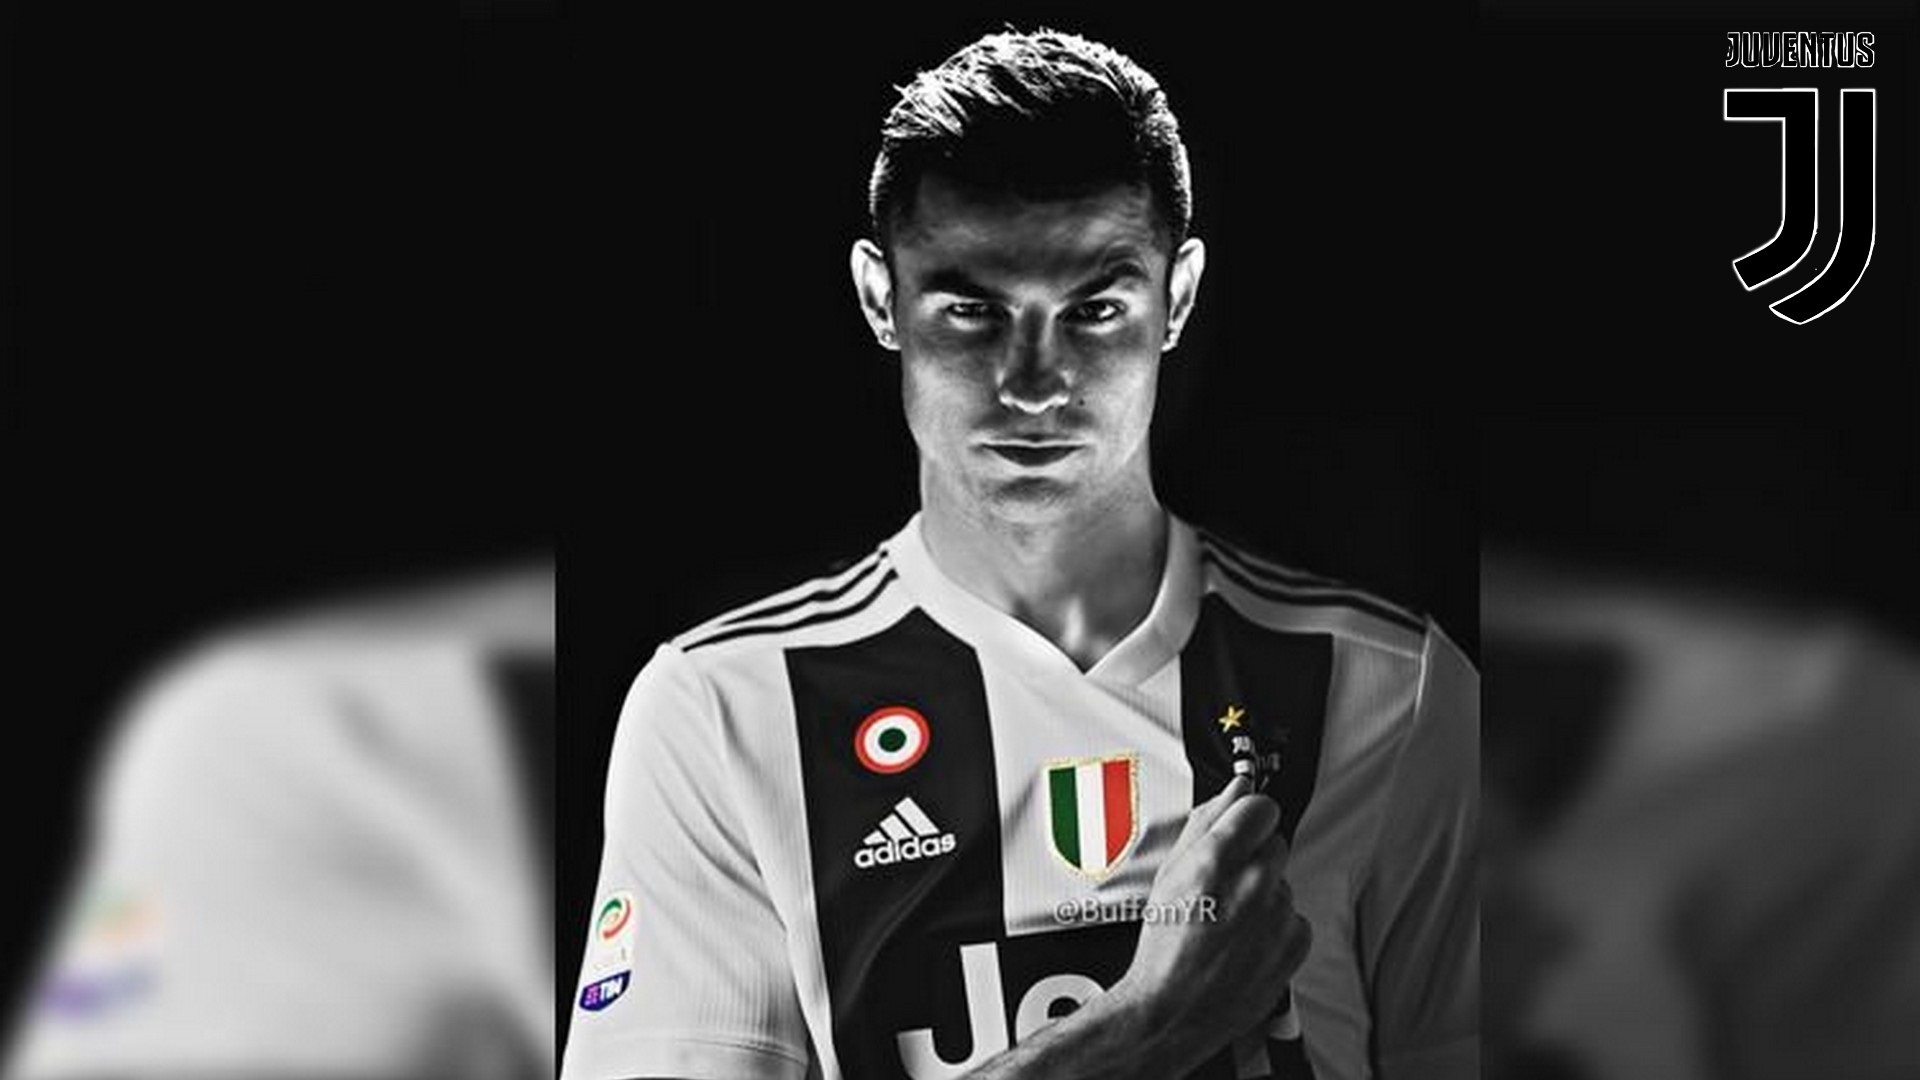 Wallpaper-Desktop-Christiano-Ronaldo-Juventus-HD.jpg